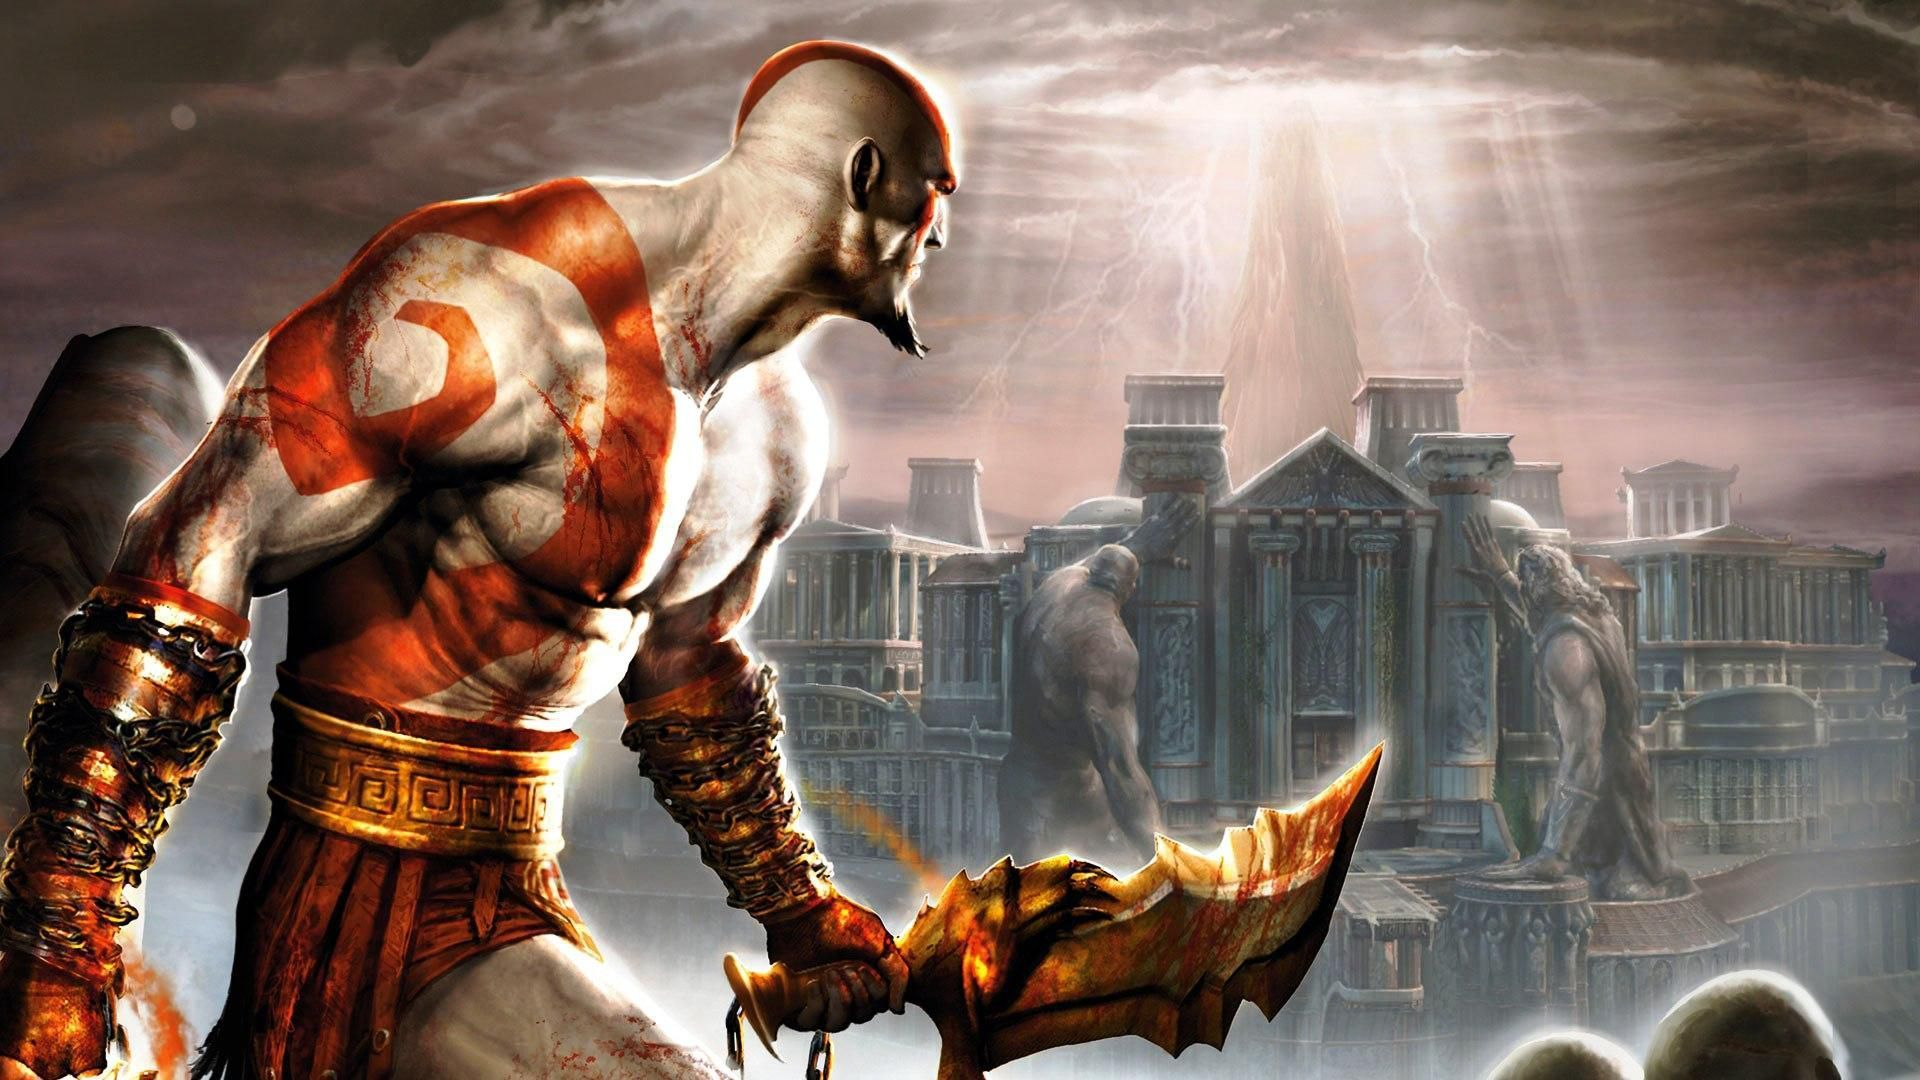 Ultra HD K God of war Wallpapers HD, Desktop Backgrounds 1920x1080